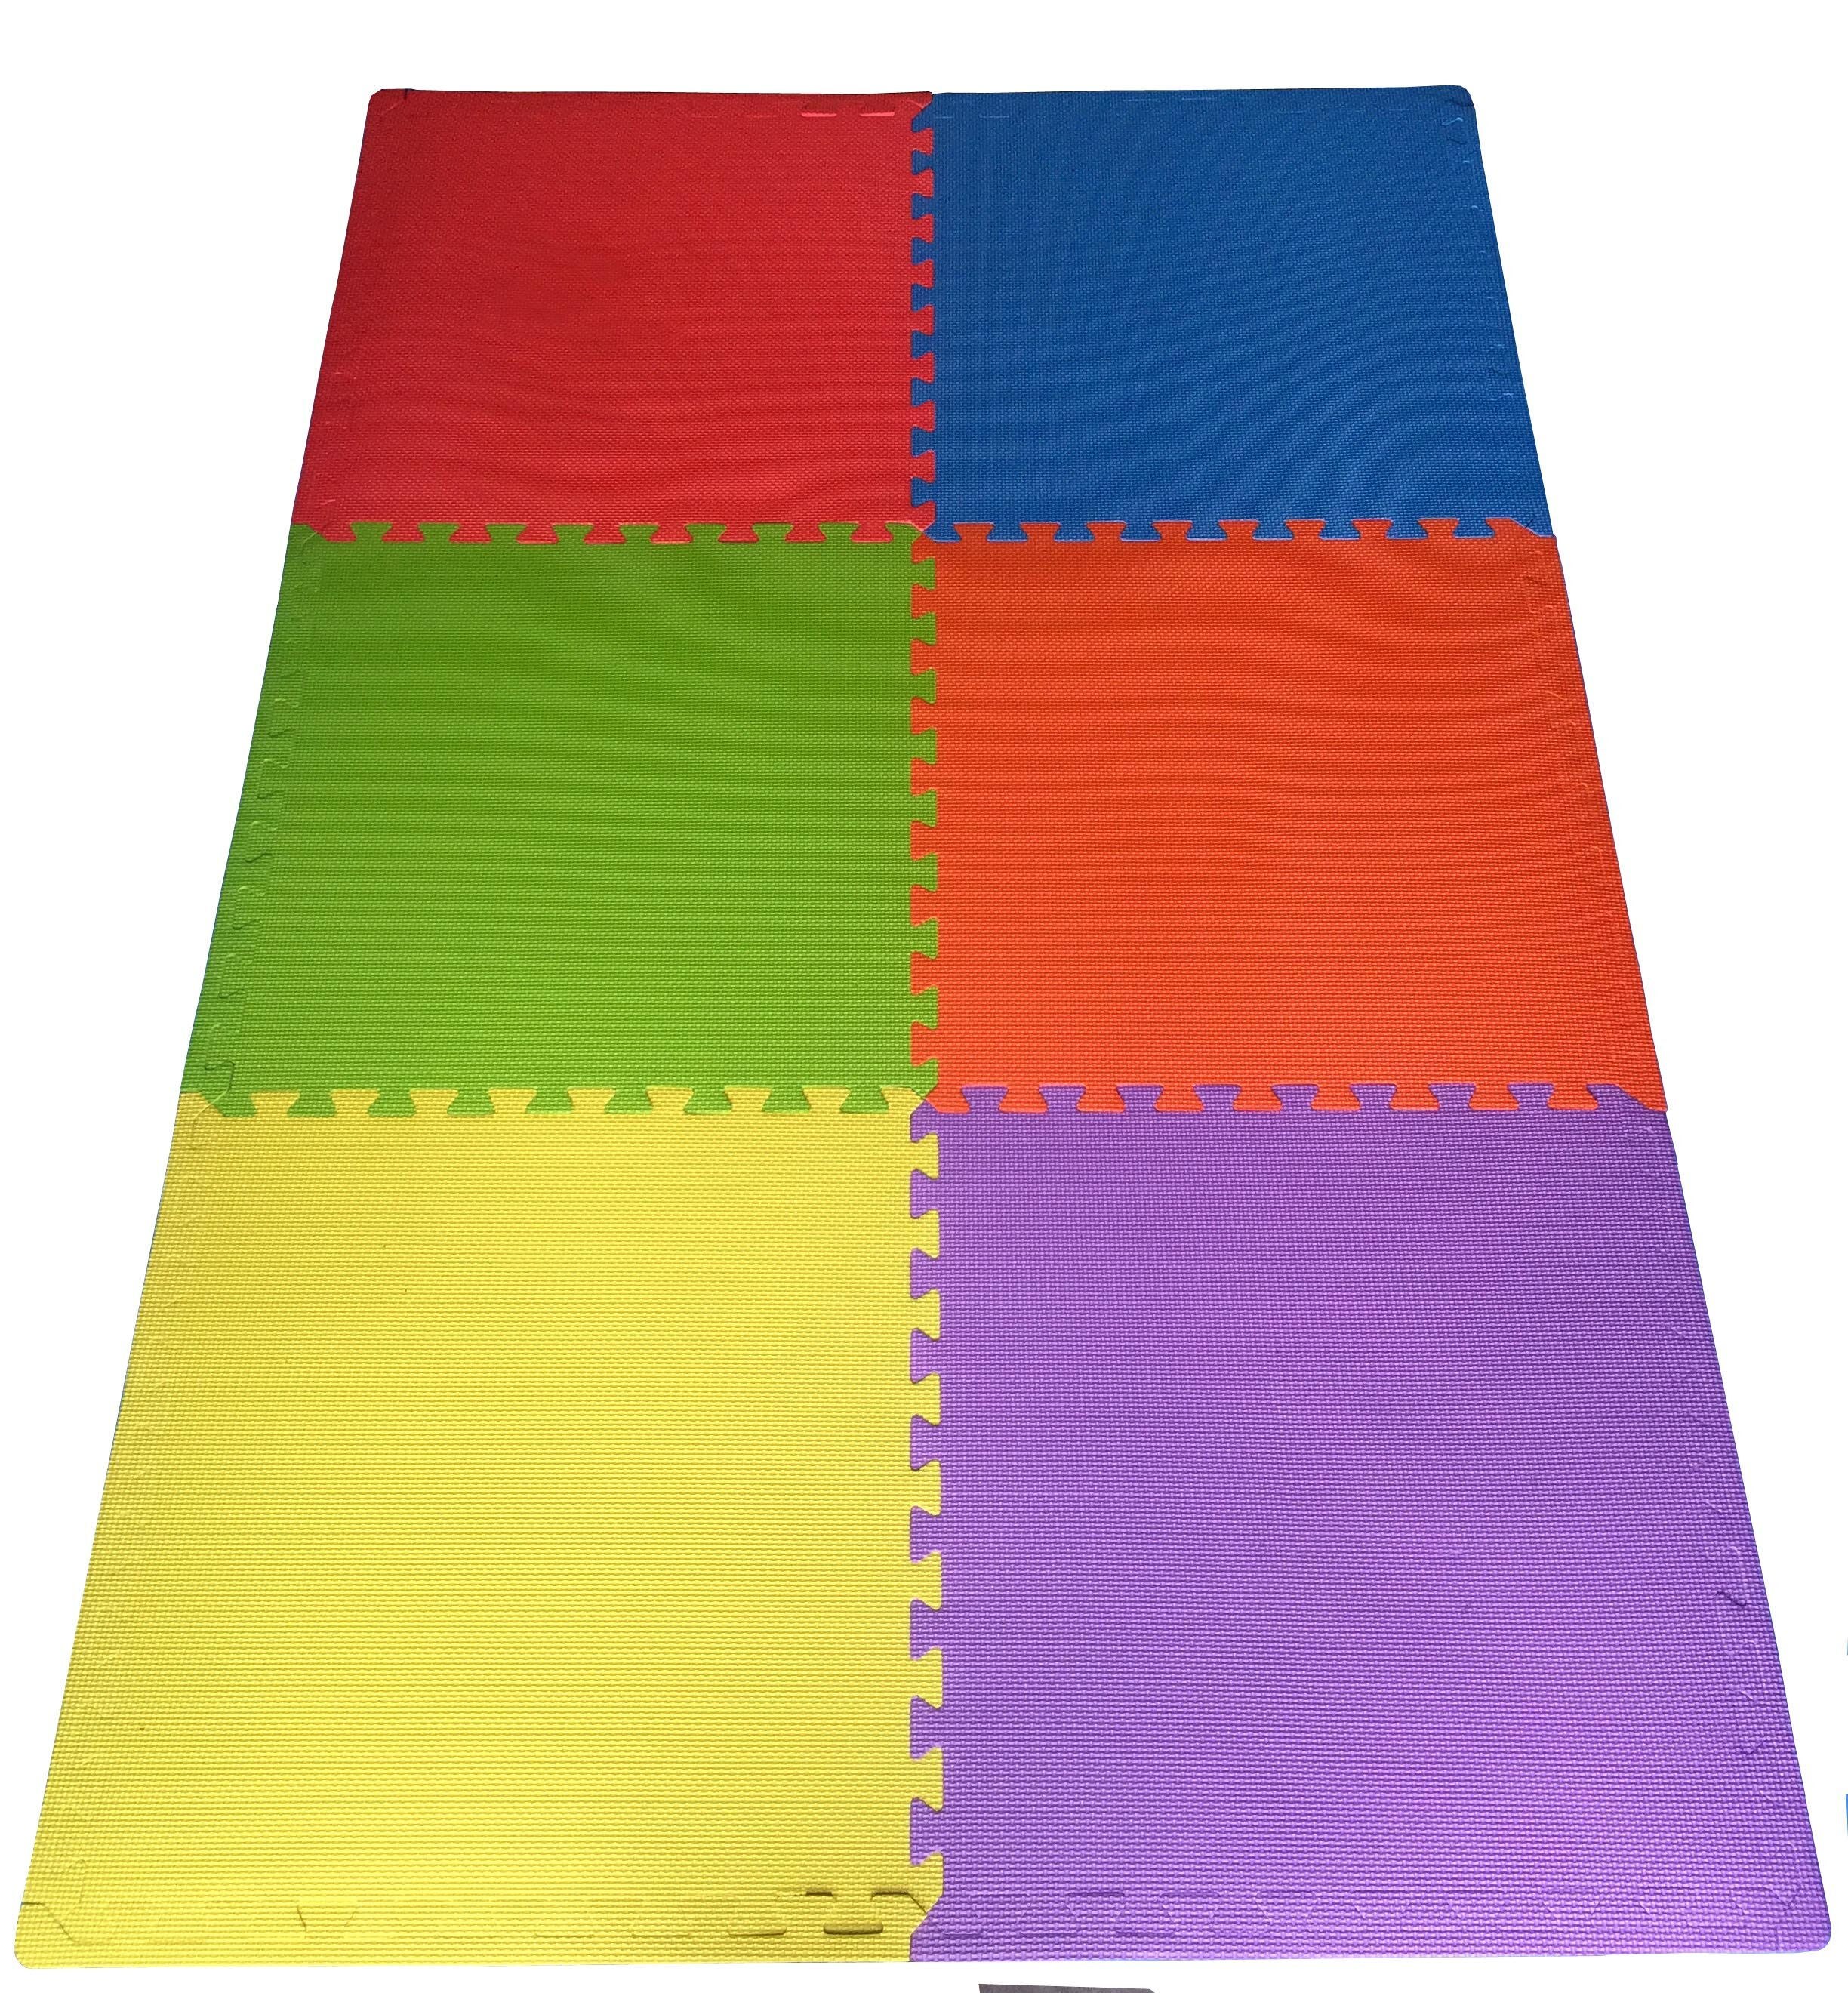 at with cheap high quotations baby piece get on non play safety deals puzzle shopping guides eva toxic mats foam line mat find